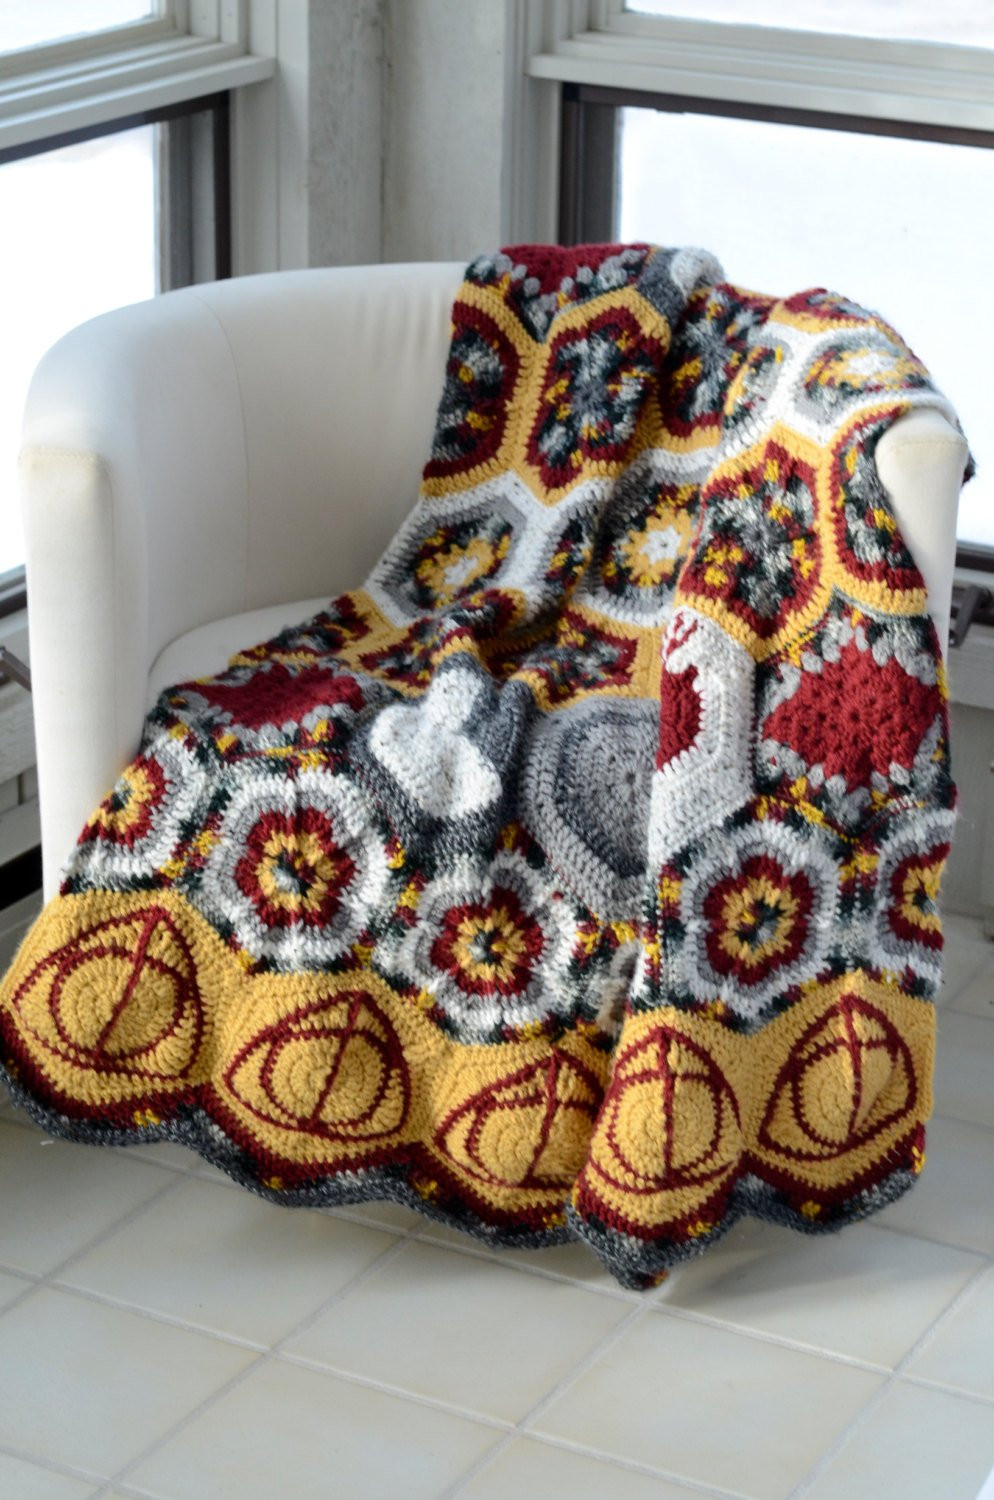 Awesome Hallows and Marauders Afghan Crochet Pattern Instant Download Harry Potter Crochet Blanket Of Luxury 42 Models Harry Potter Crochet Blanket